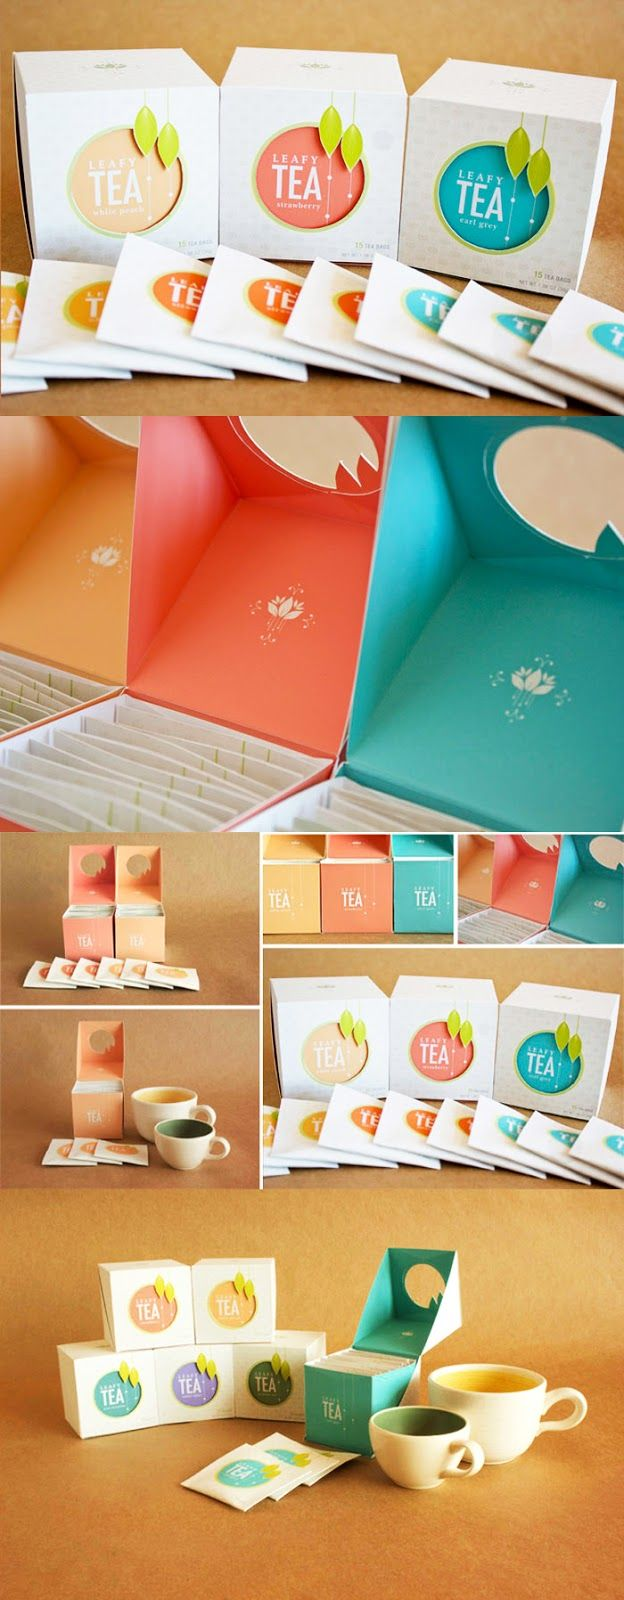 TEA PACKAGE | TEA PACKAGING DESIGN  LEAFY TEA PACKAGING DESIGNED BY Belinda Shih